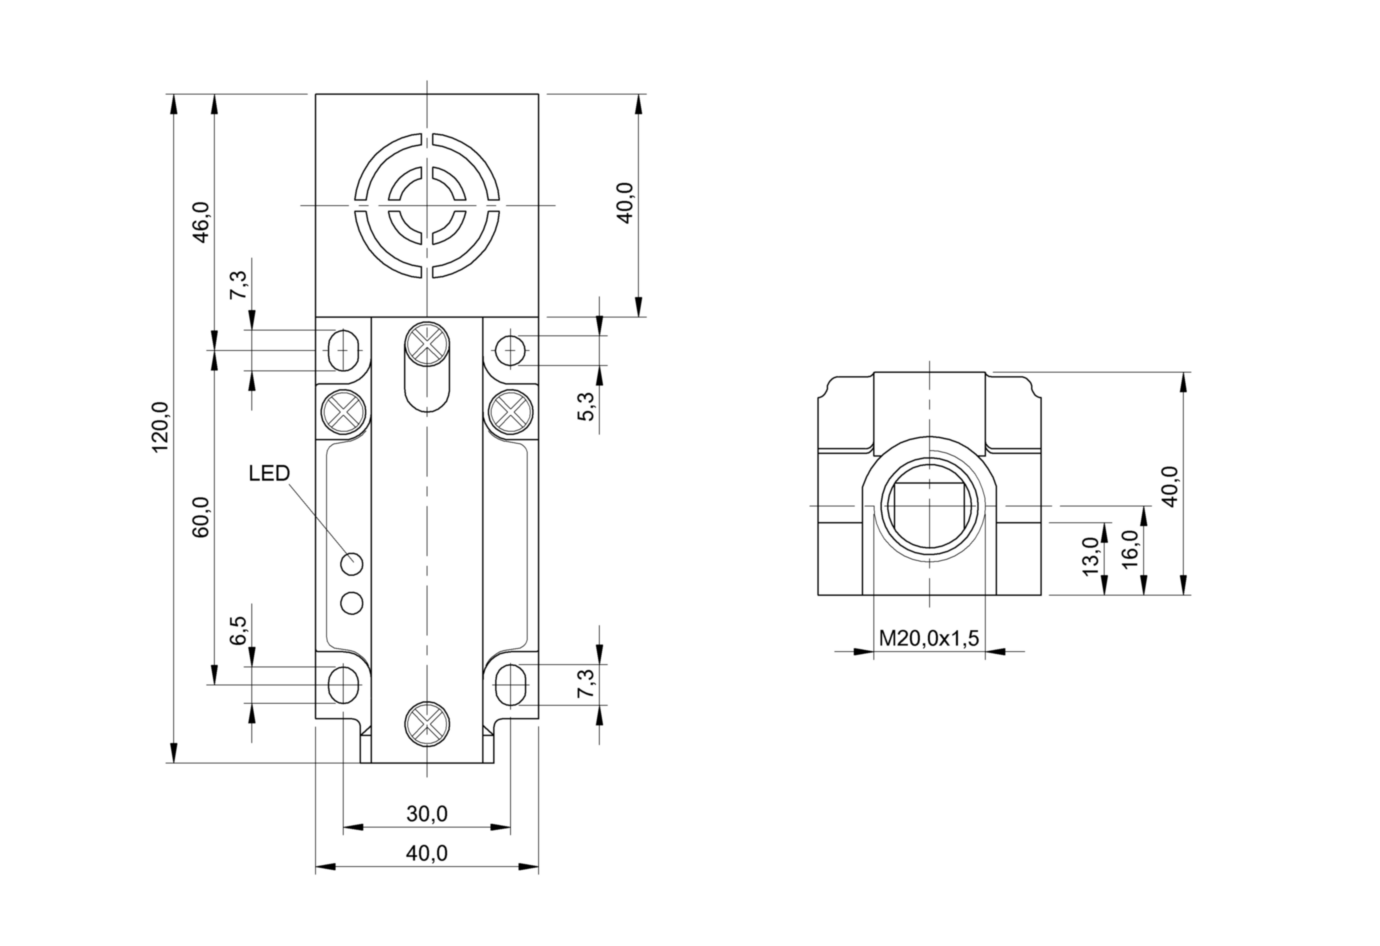 Bes020y Bes 517 223 M3 E Balluff Inductive Sensor 2wire Wiring Diagram Download